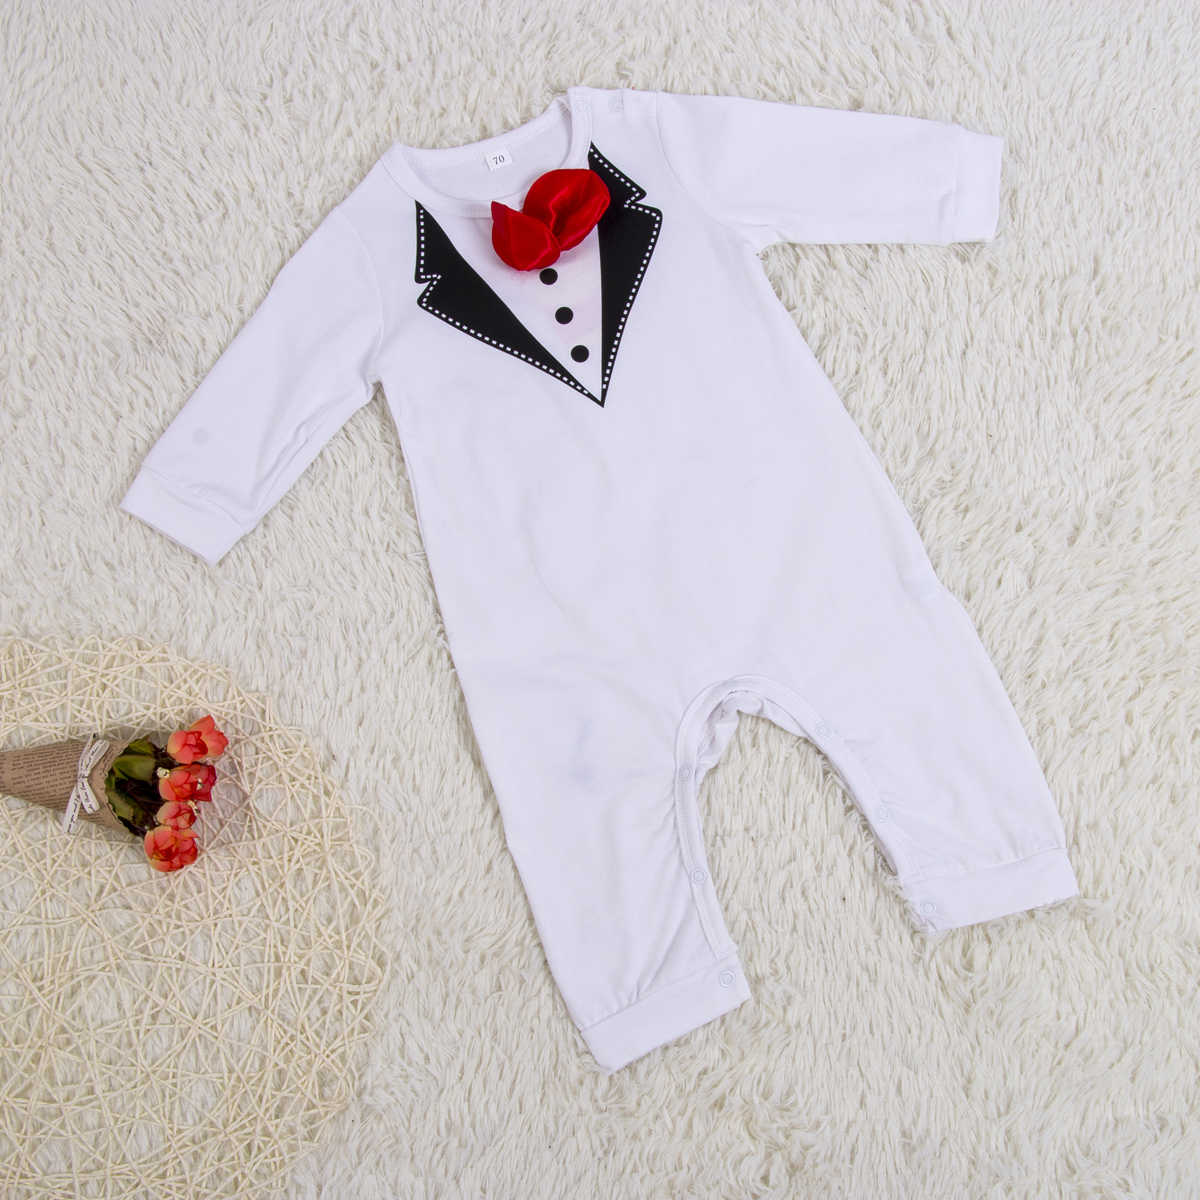 242a40a360d5 ... 2018 Brand New Summer Formal Toddler Baby Gentalman Boys Romper Long  Sleeve Gentle Bow Solid Jumpsuits ...